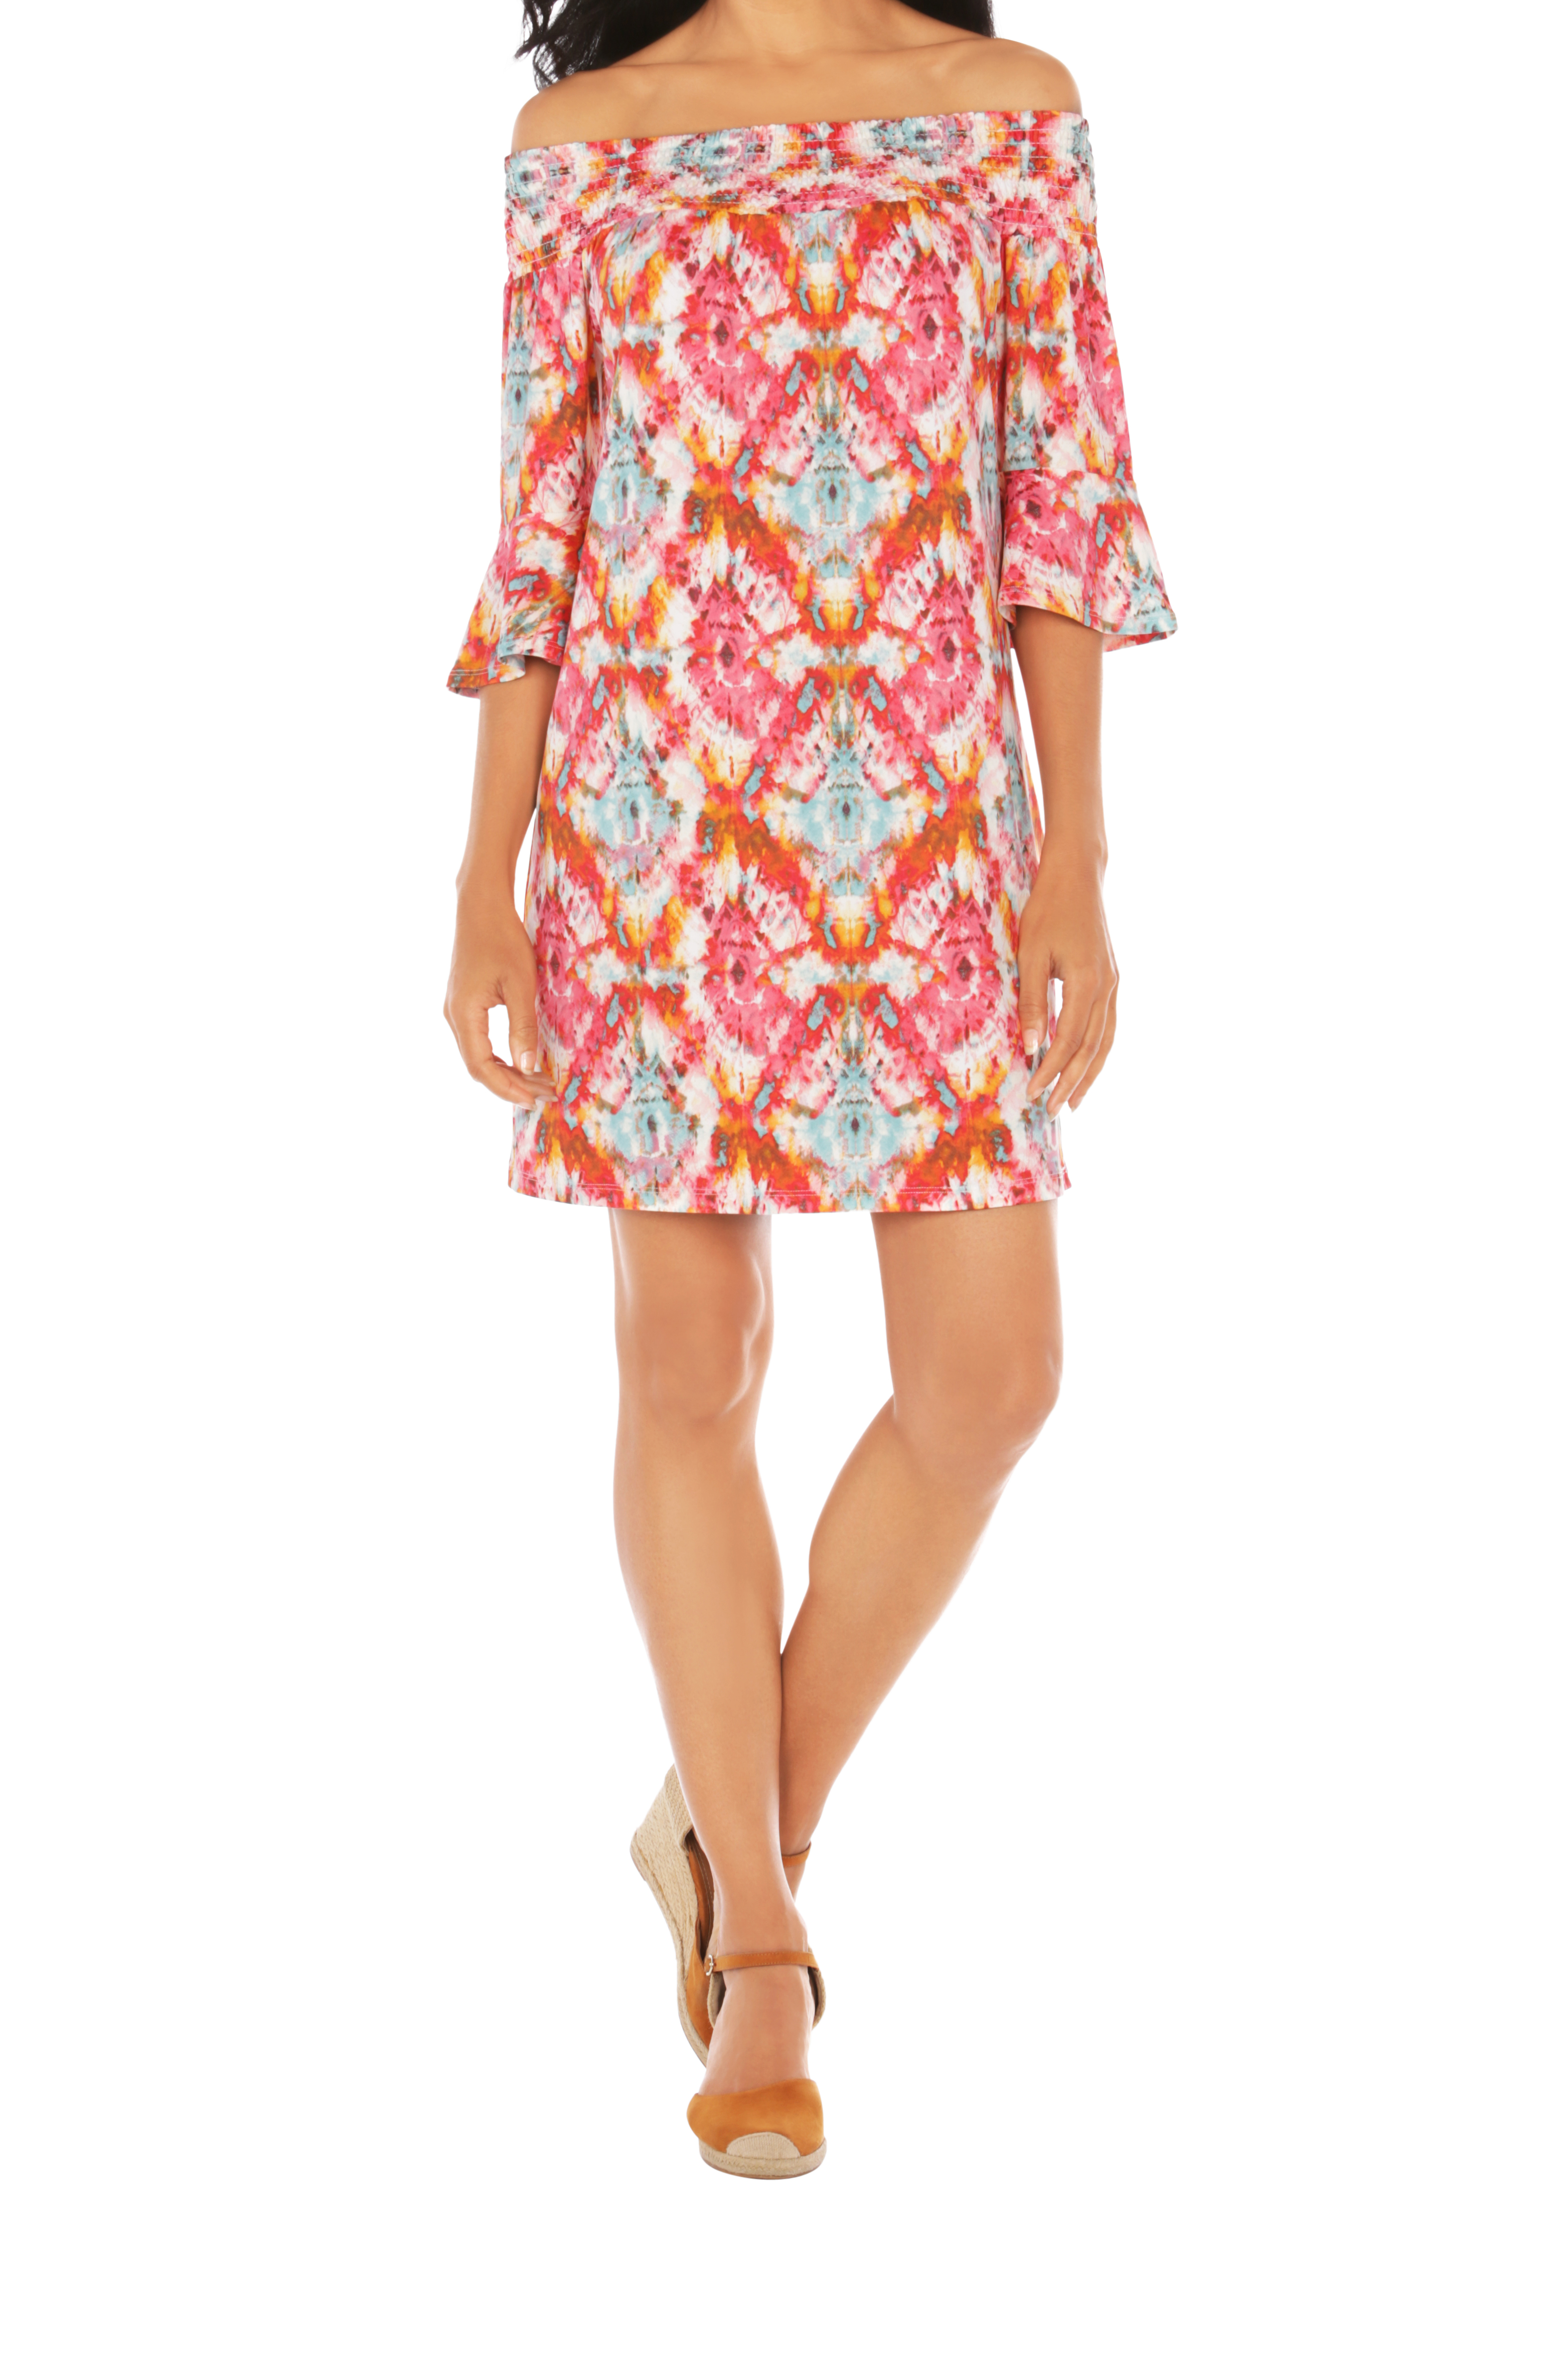 Caribbean Joe® UPF Sun Protection Off the Shoulder Dress -Very Berry - Front